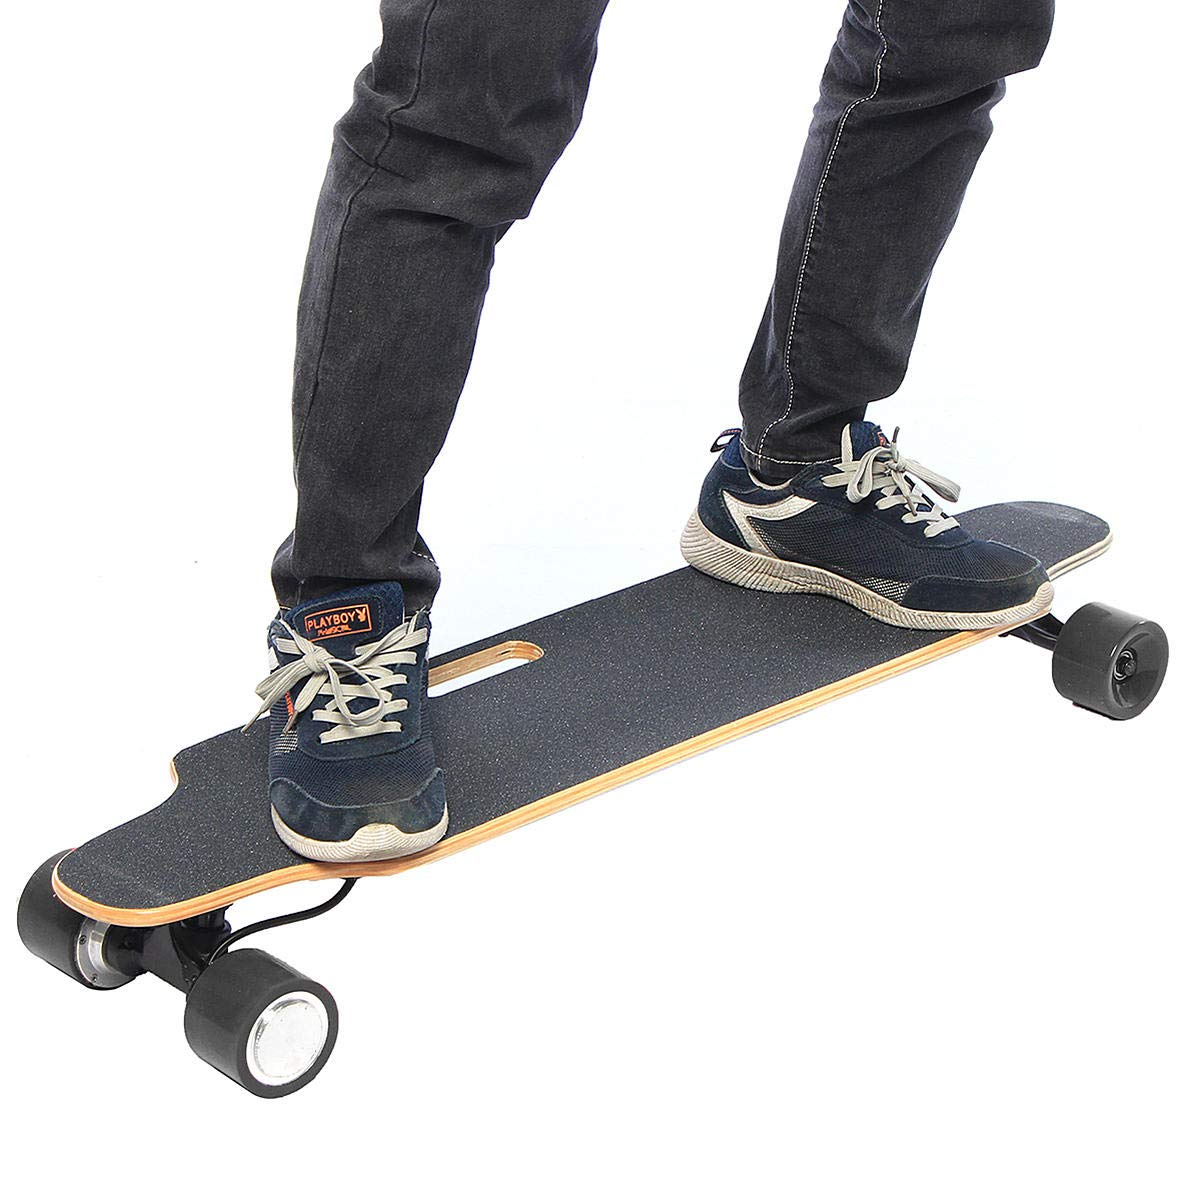 Freelance Shop Sport ALFAS 25km/h 500W Electric Skateboard Scooter Remote Control Longboard 7-Layer Maple Board Shock Proof Board - Red